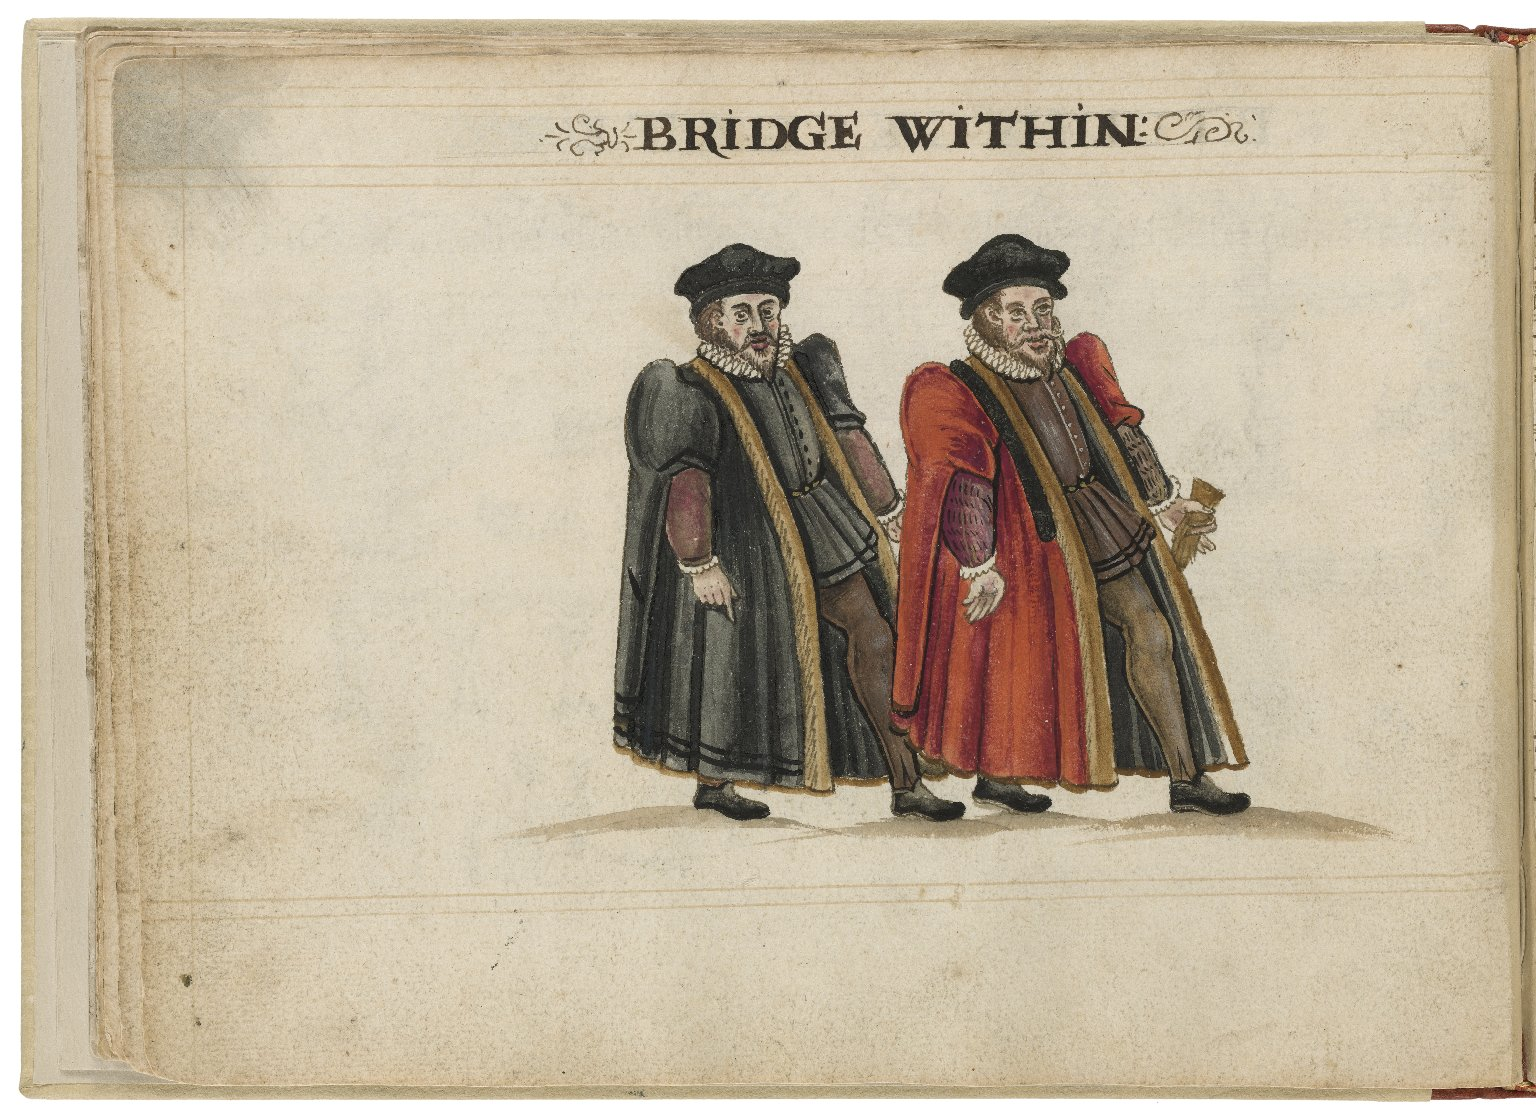 Watercolour painting of the alderman and deputy in charge of Bridge Within Ward by Hugh Alley. Image courtesy of the Folger Digital Image Collection.